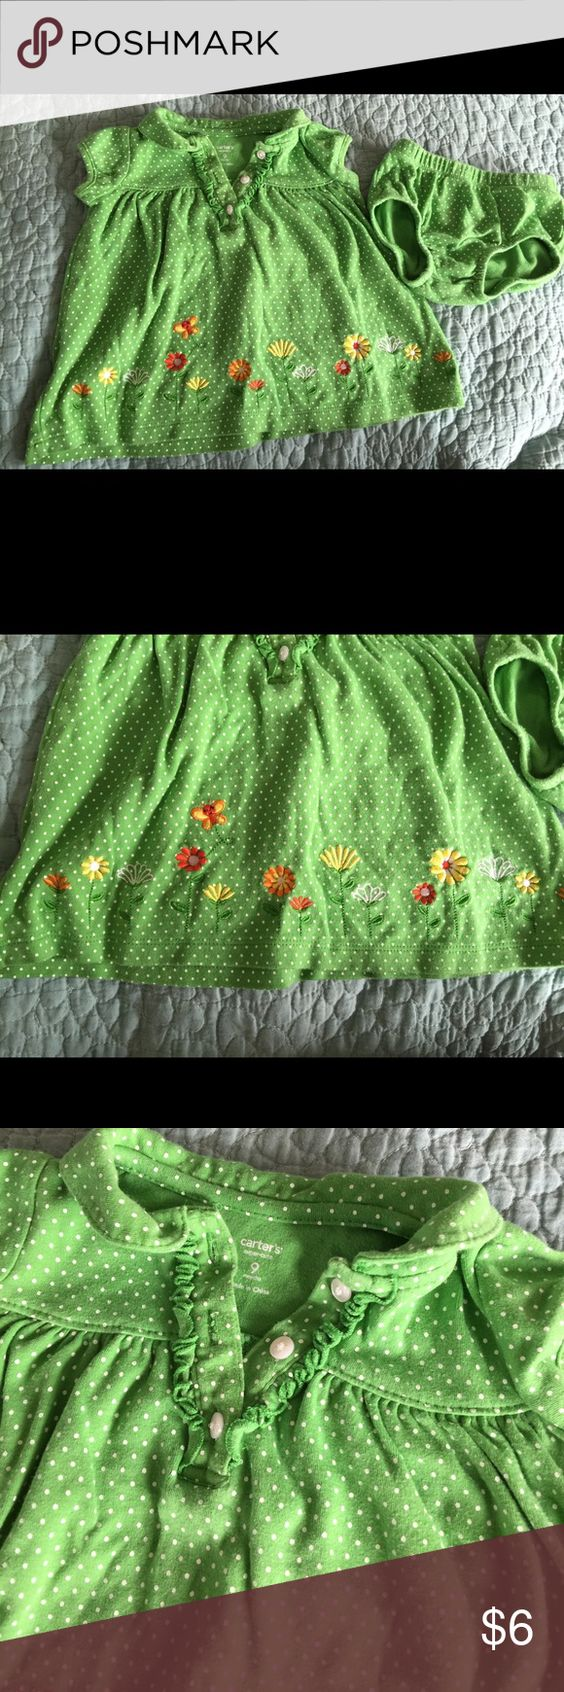 Green dress baby images  Carters baby girl dress with matching diaper cover  Baby girl